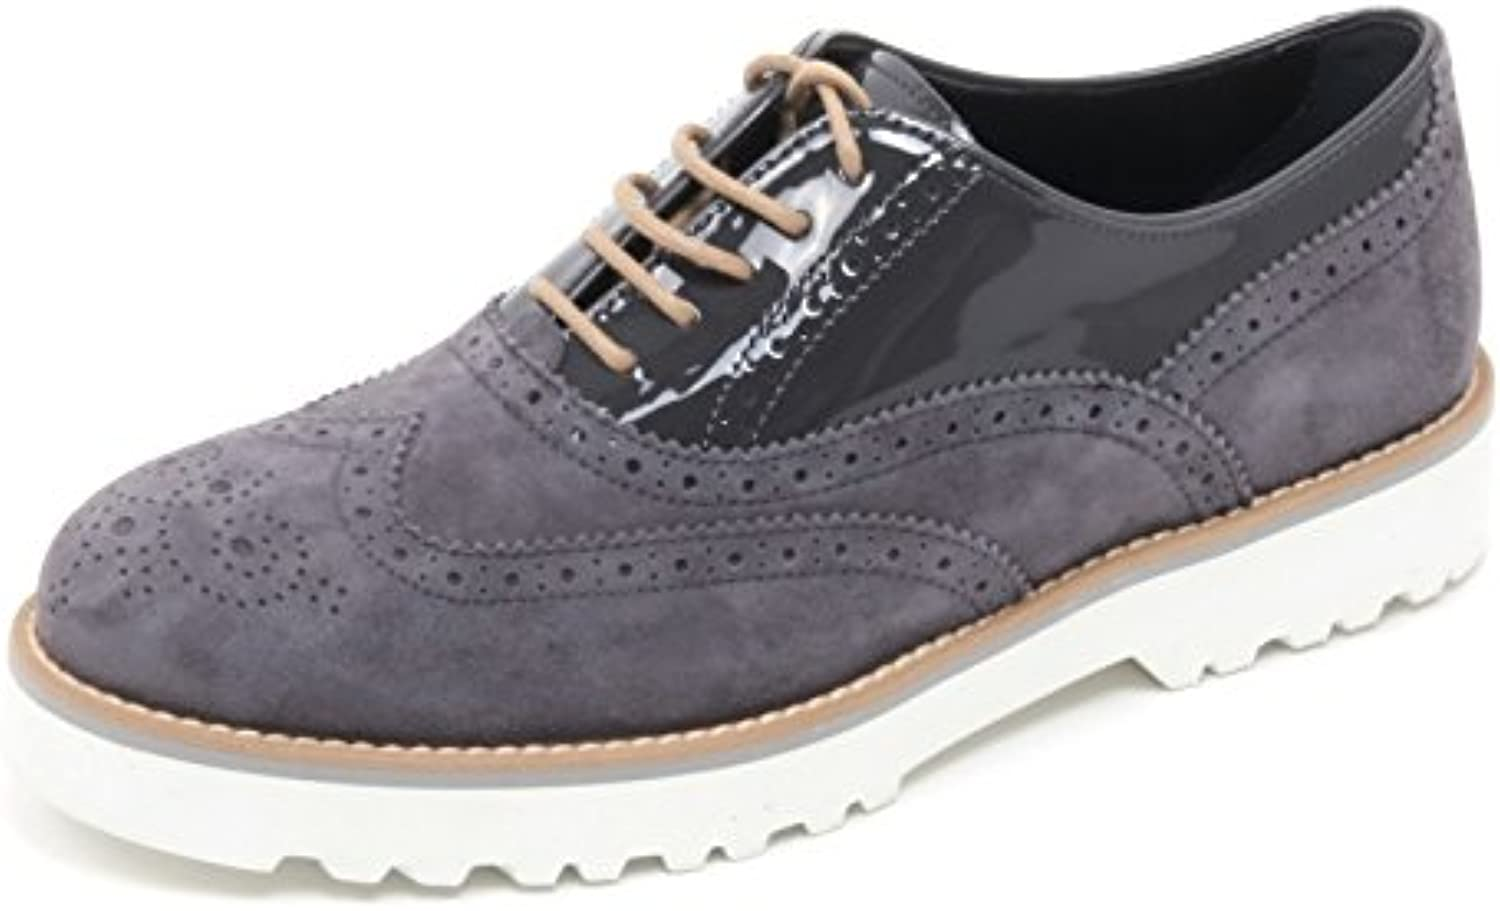 B6102 scarpa inglese donna HOGAN H259 ROUTE francesina grigio shoe woman